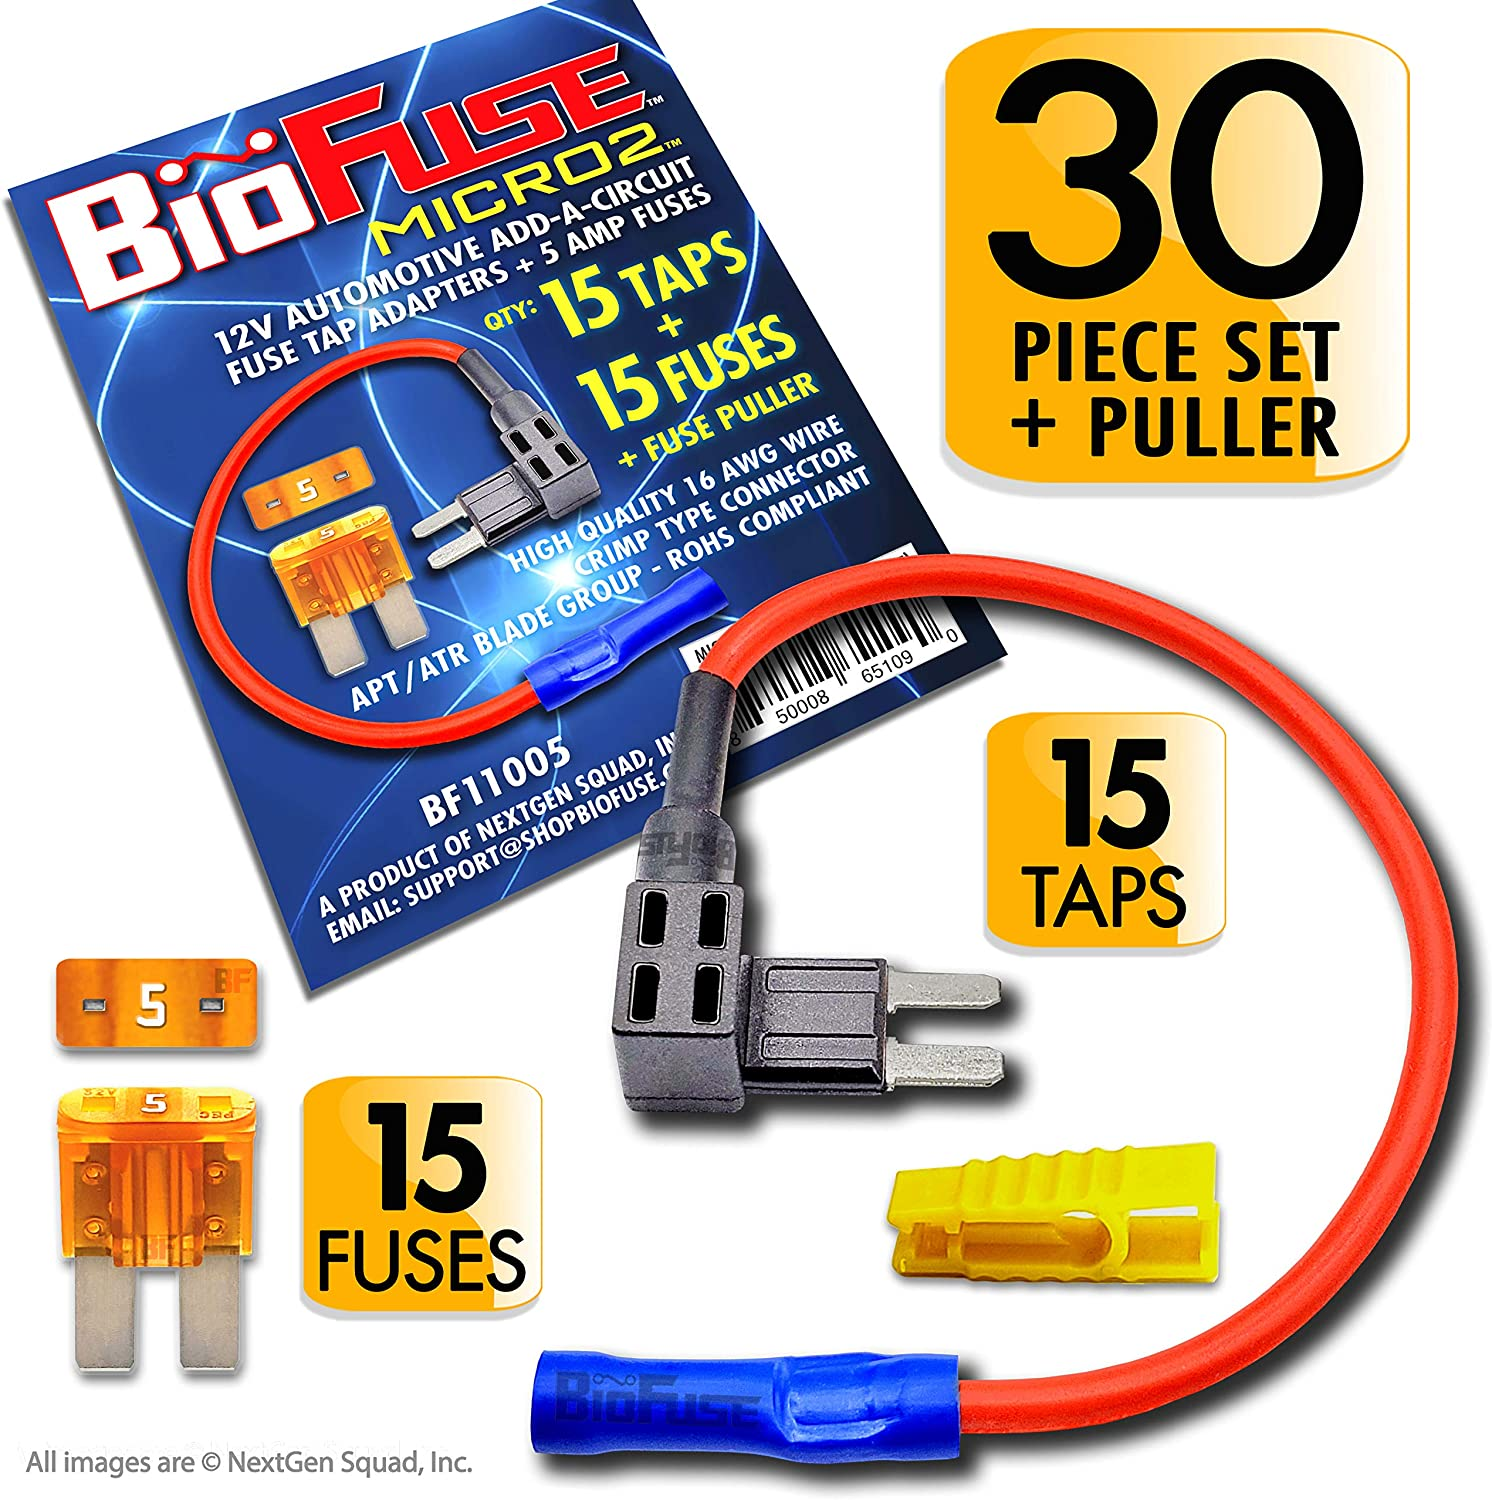 BioFuse Micro2 30 Piece Automotive Fuses and Holders Pack: Add a Circuit Fuse Tap Adapters, Fuse Puller 5A Blade Fuses 15 15